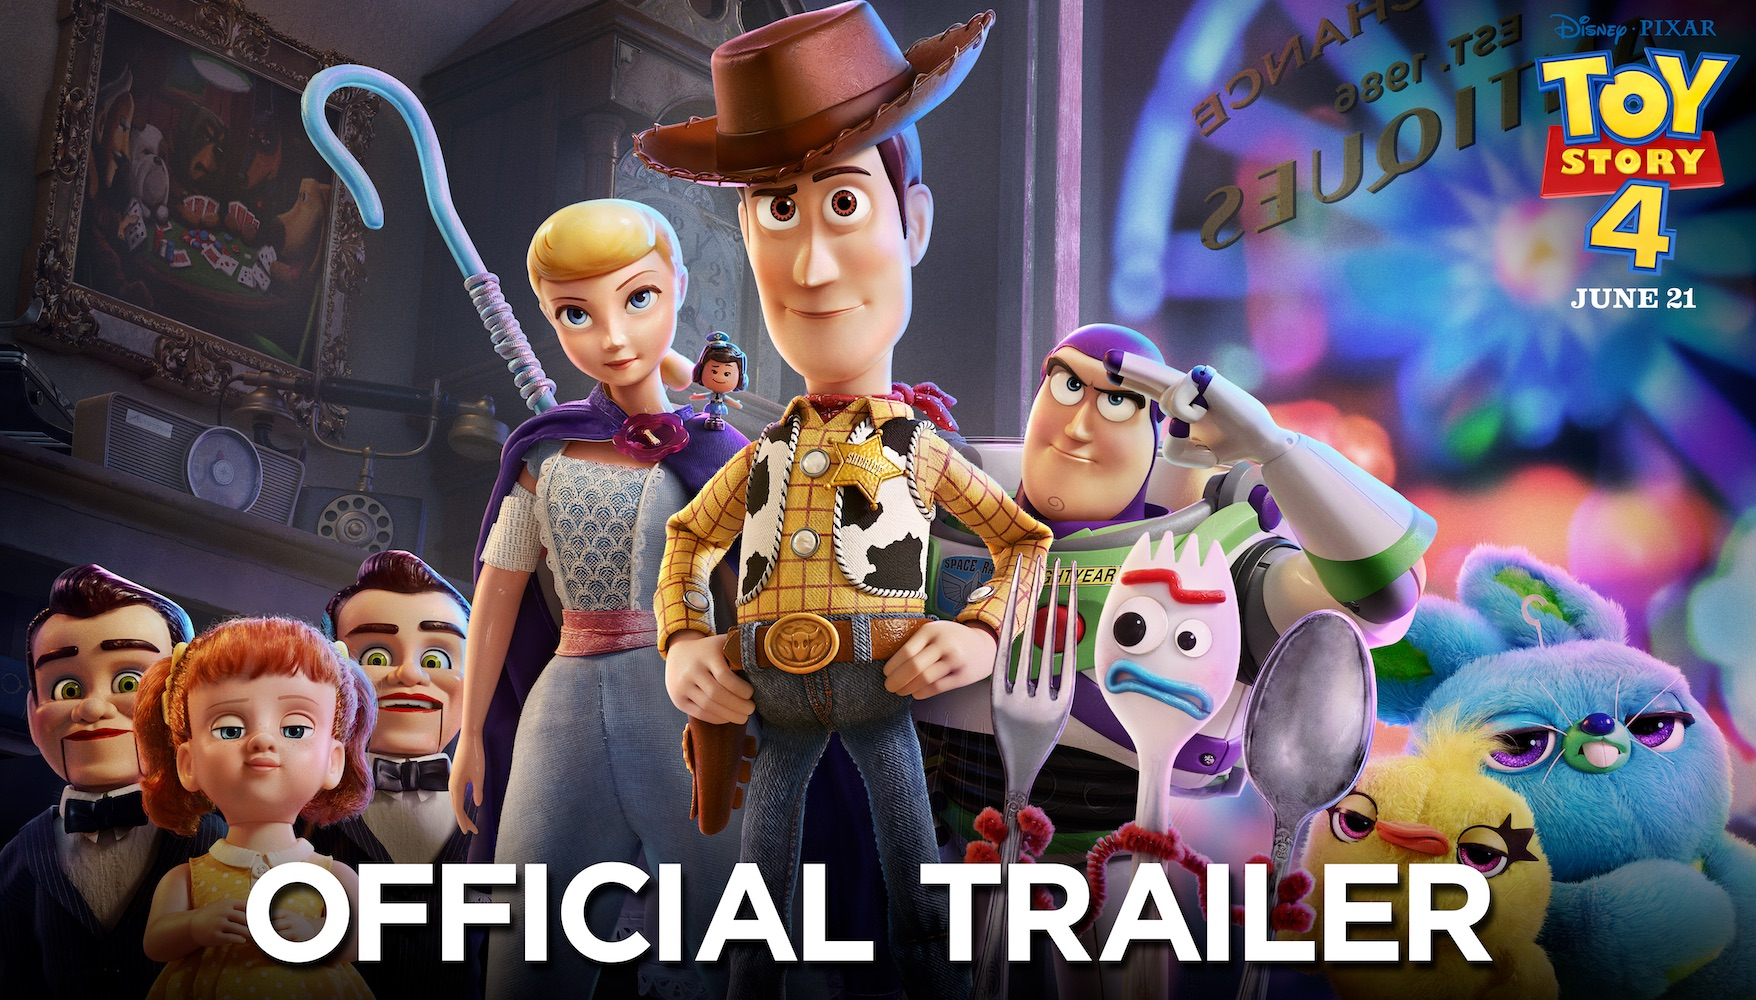 Toy Story 4 (Credit: Disney/Pixar)